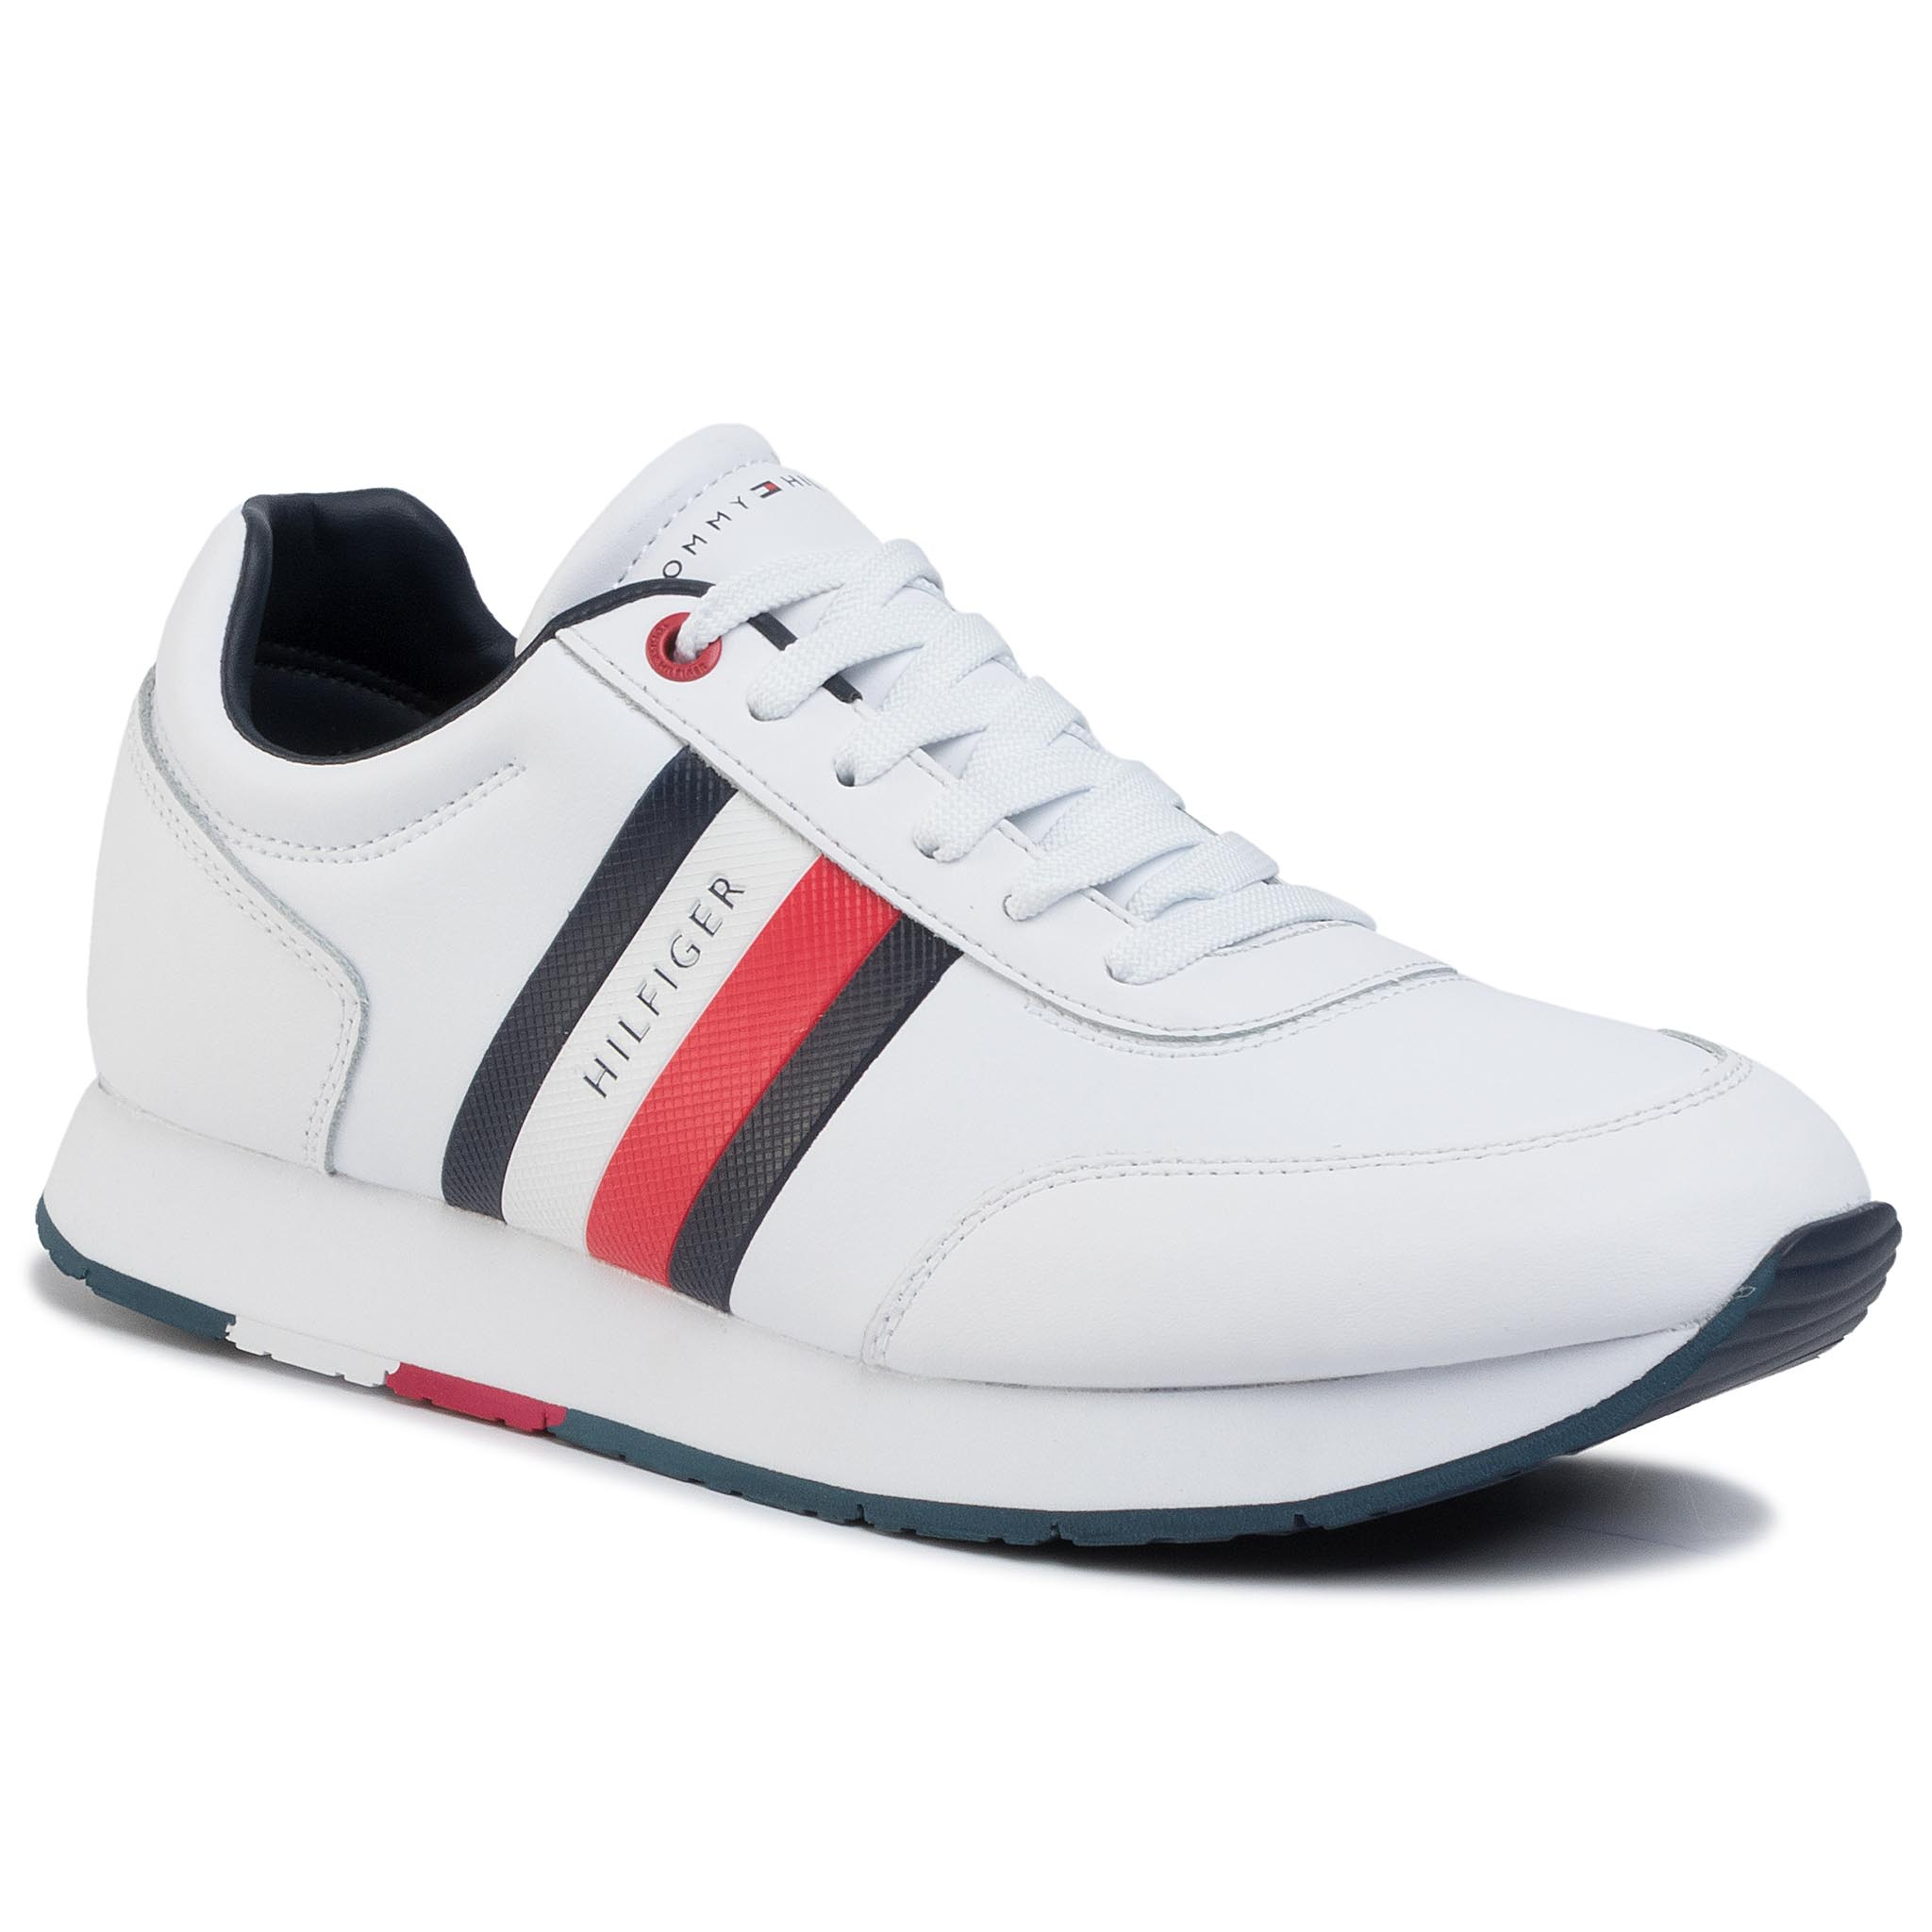 Sneakers TOMMY HILFIGER - Corporate Leather Flag Runner FM0FM02651 White YBS